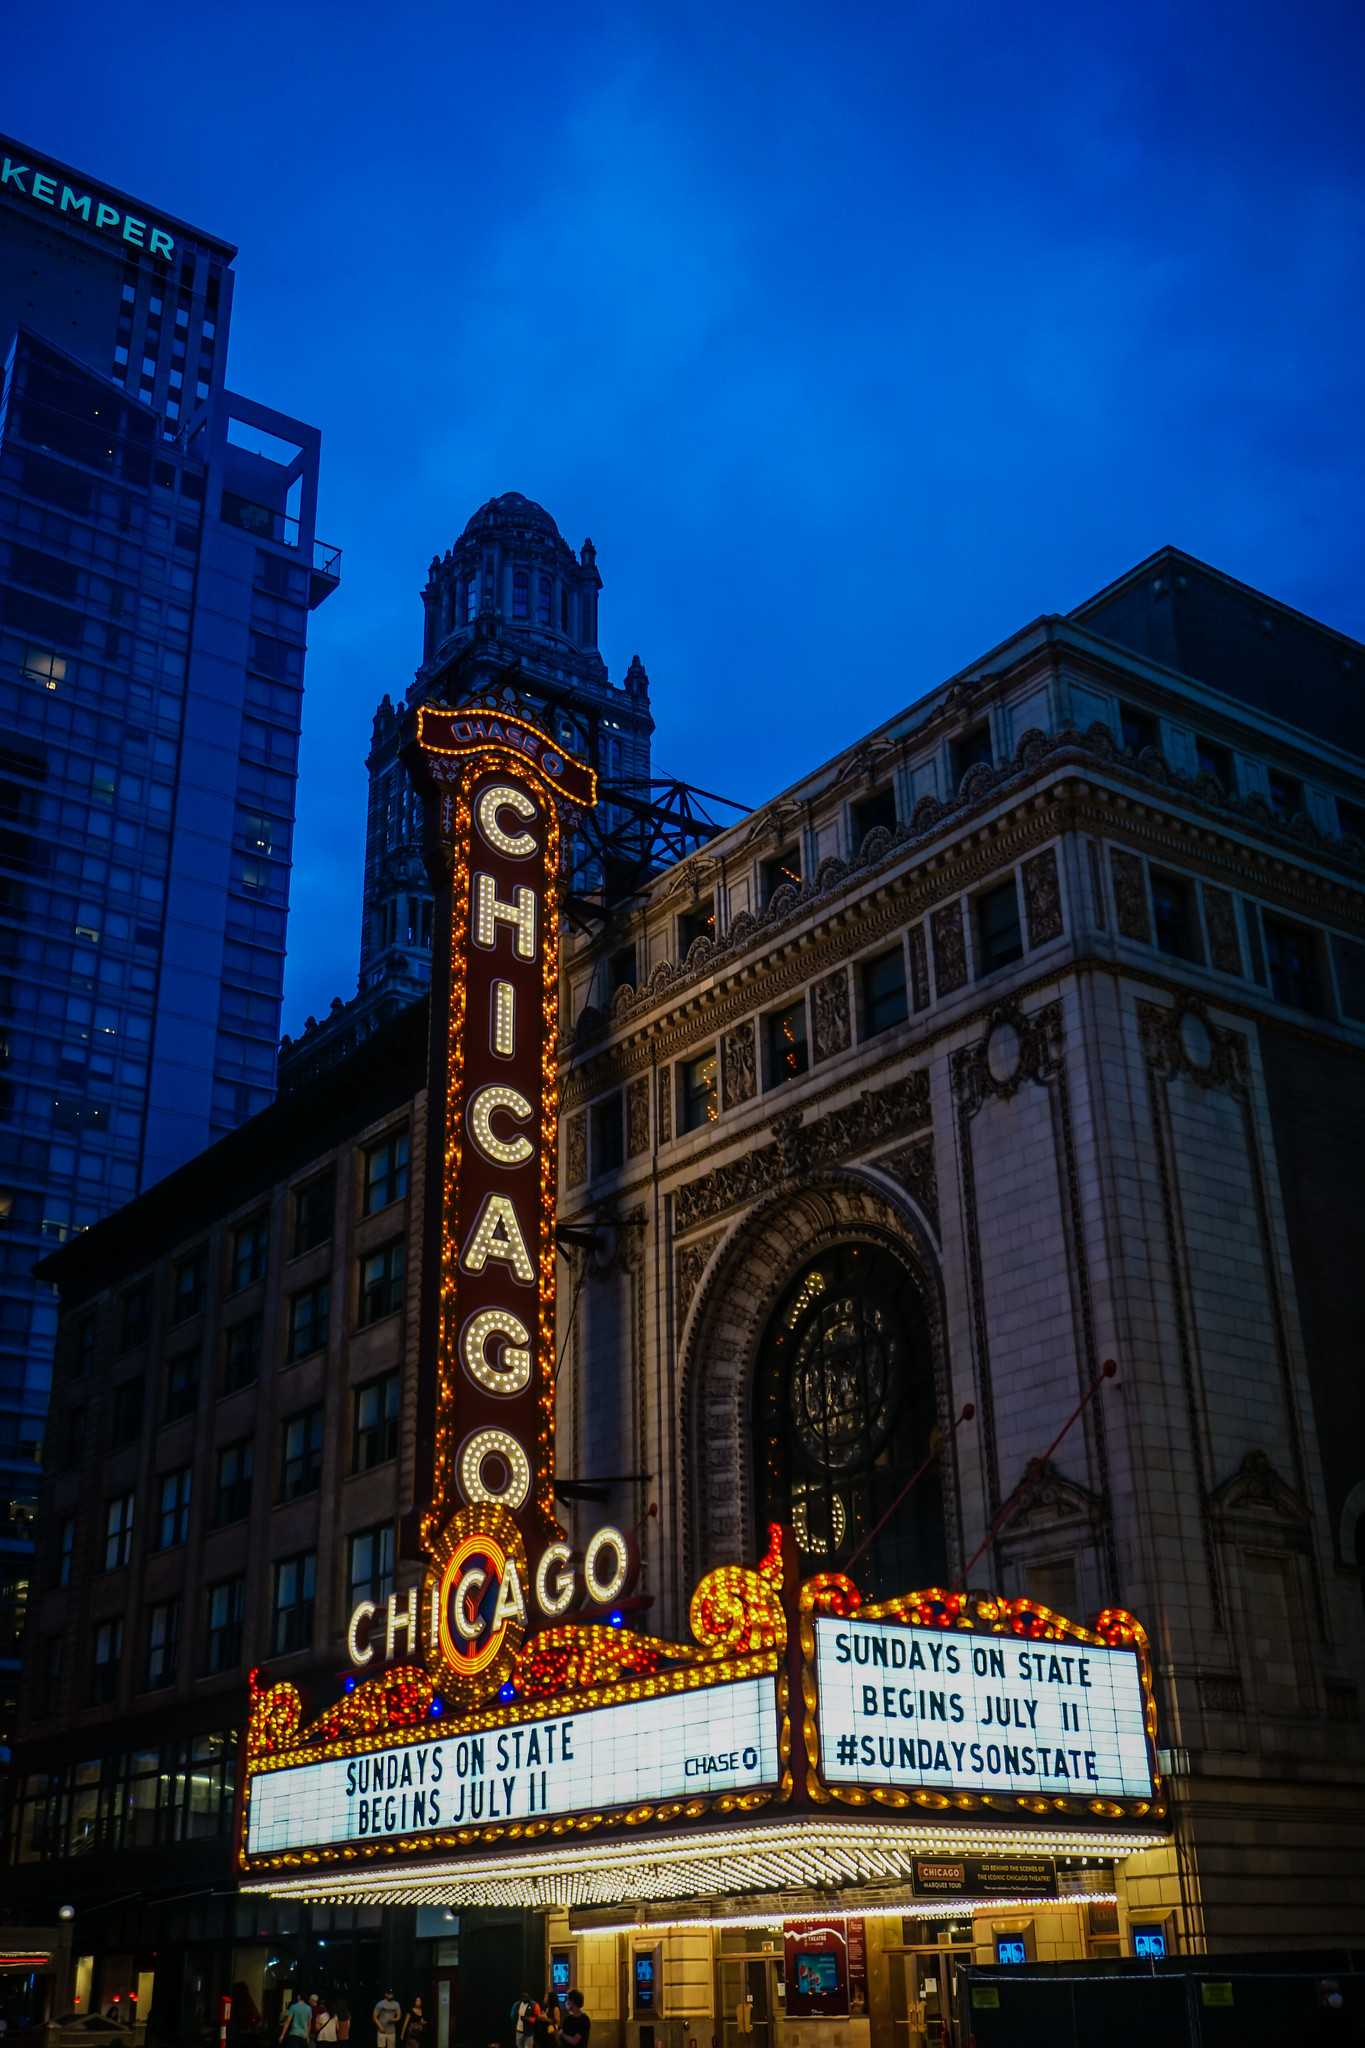 Chicago Theater at night